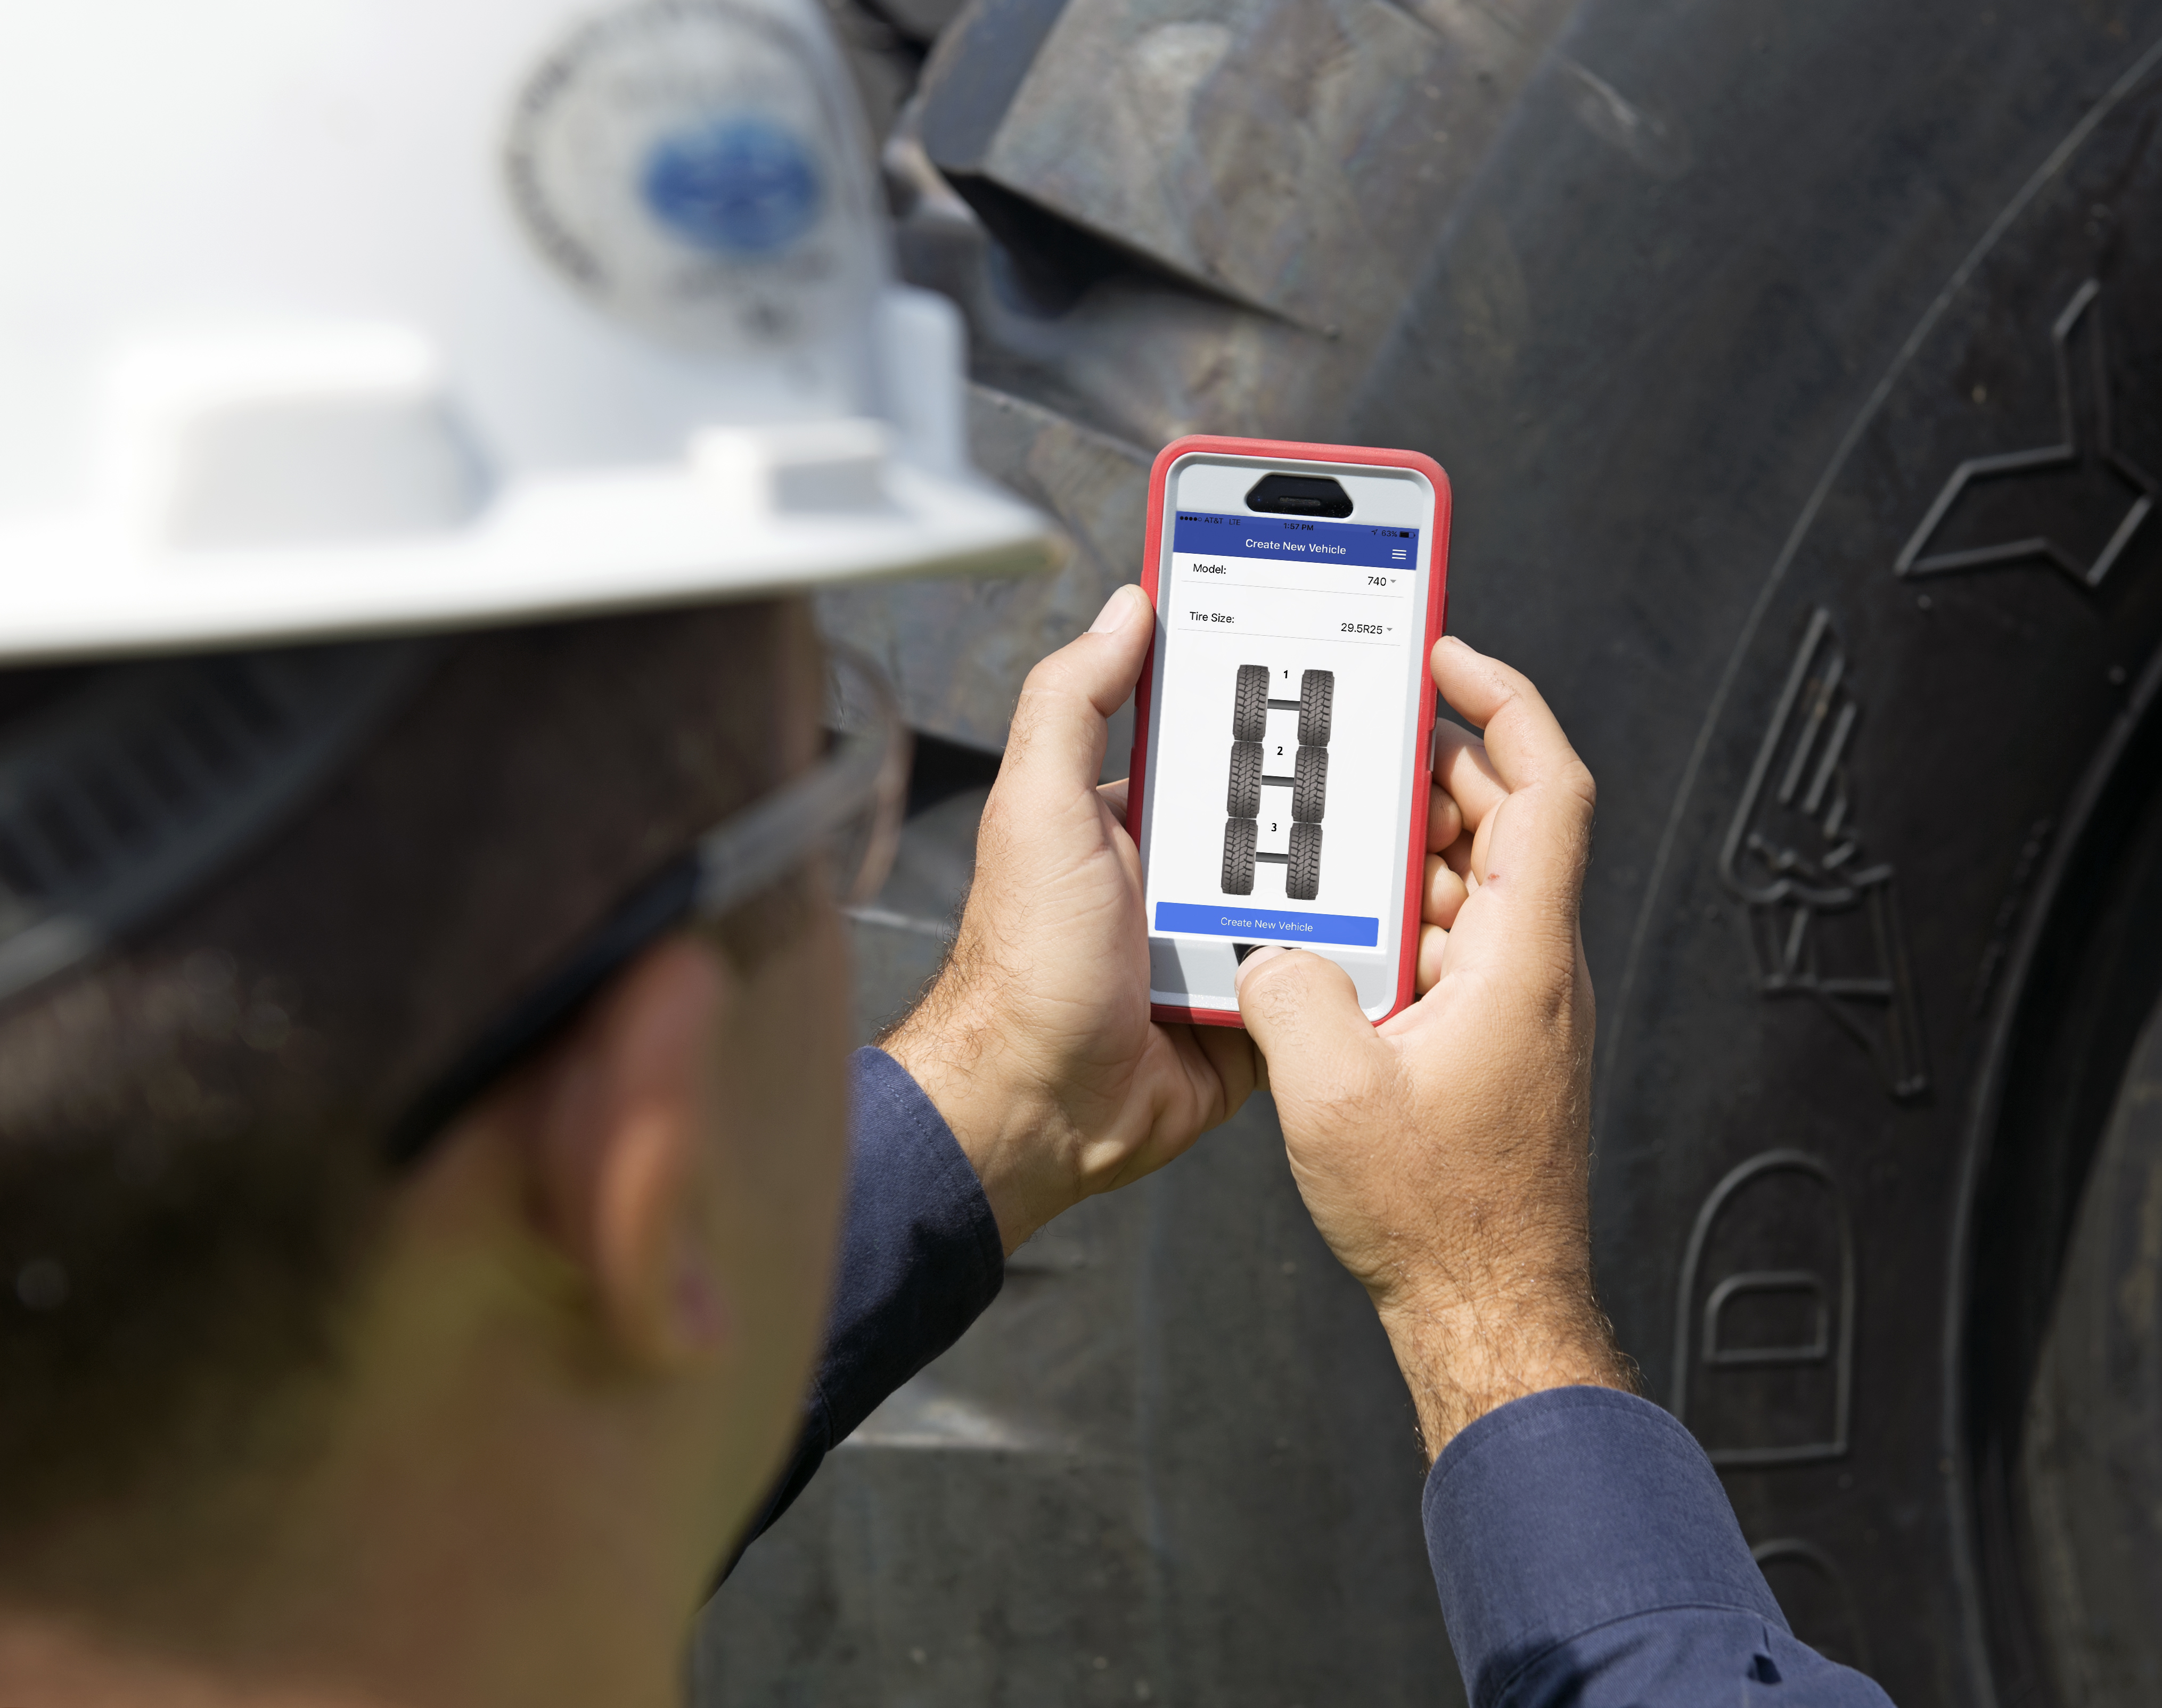 Goodyear Overhauls Its OTR Tire Tracking System